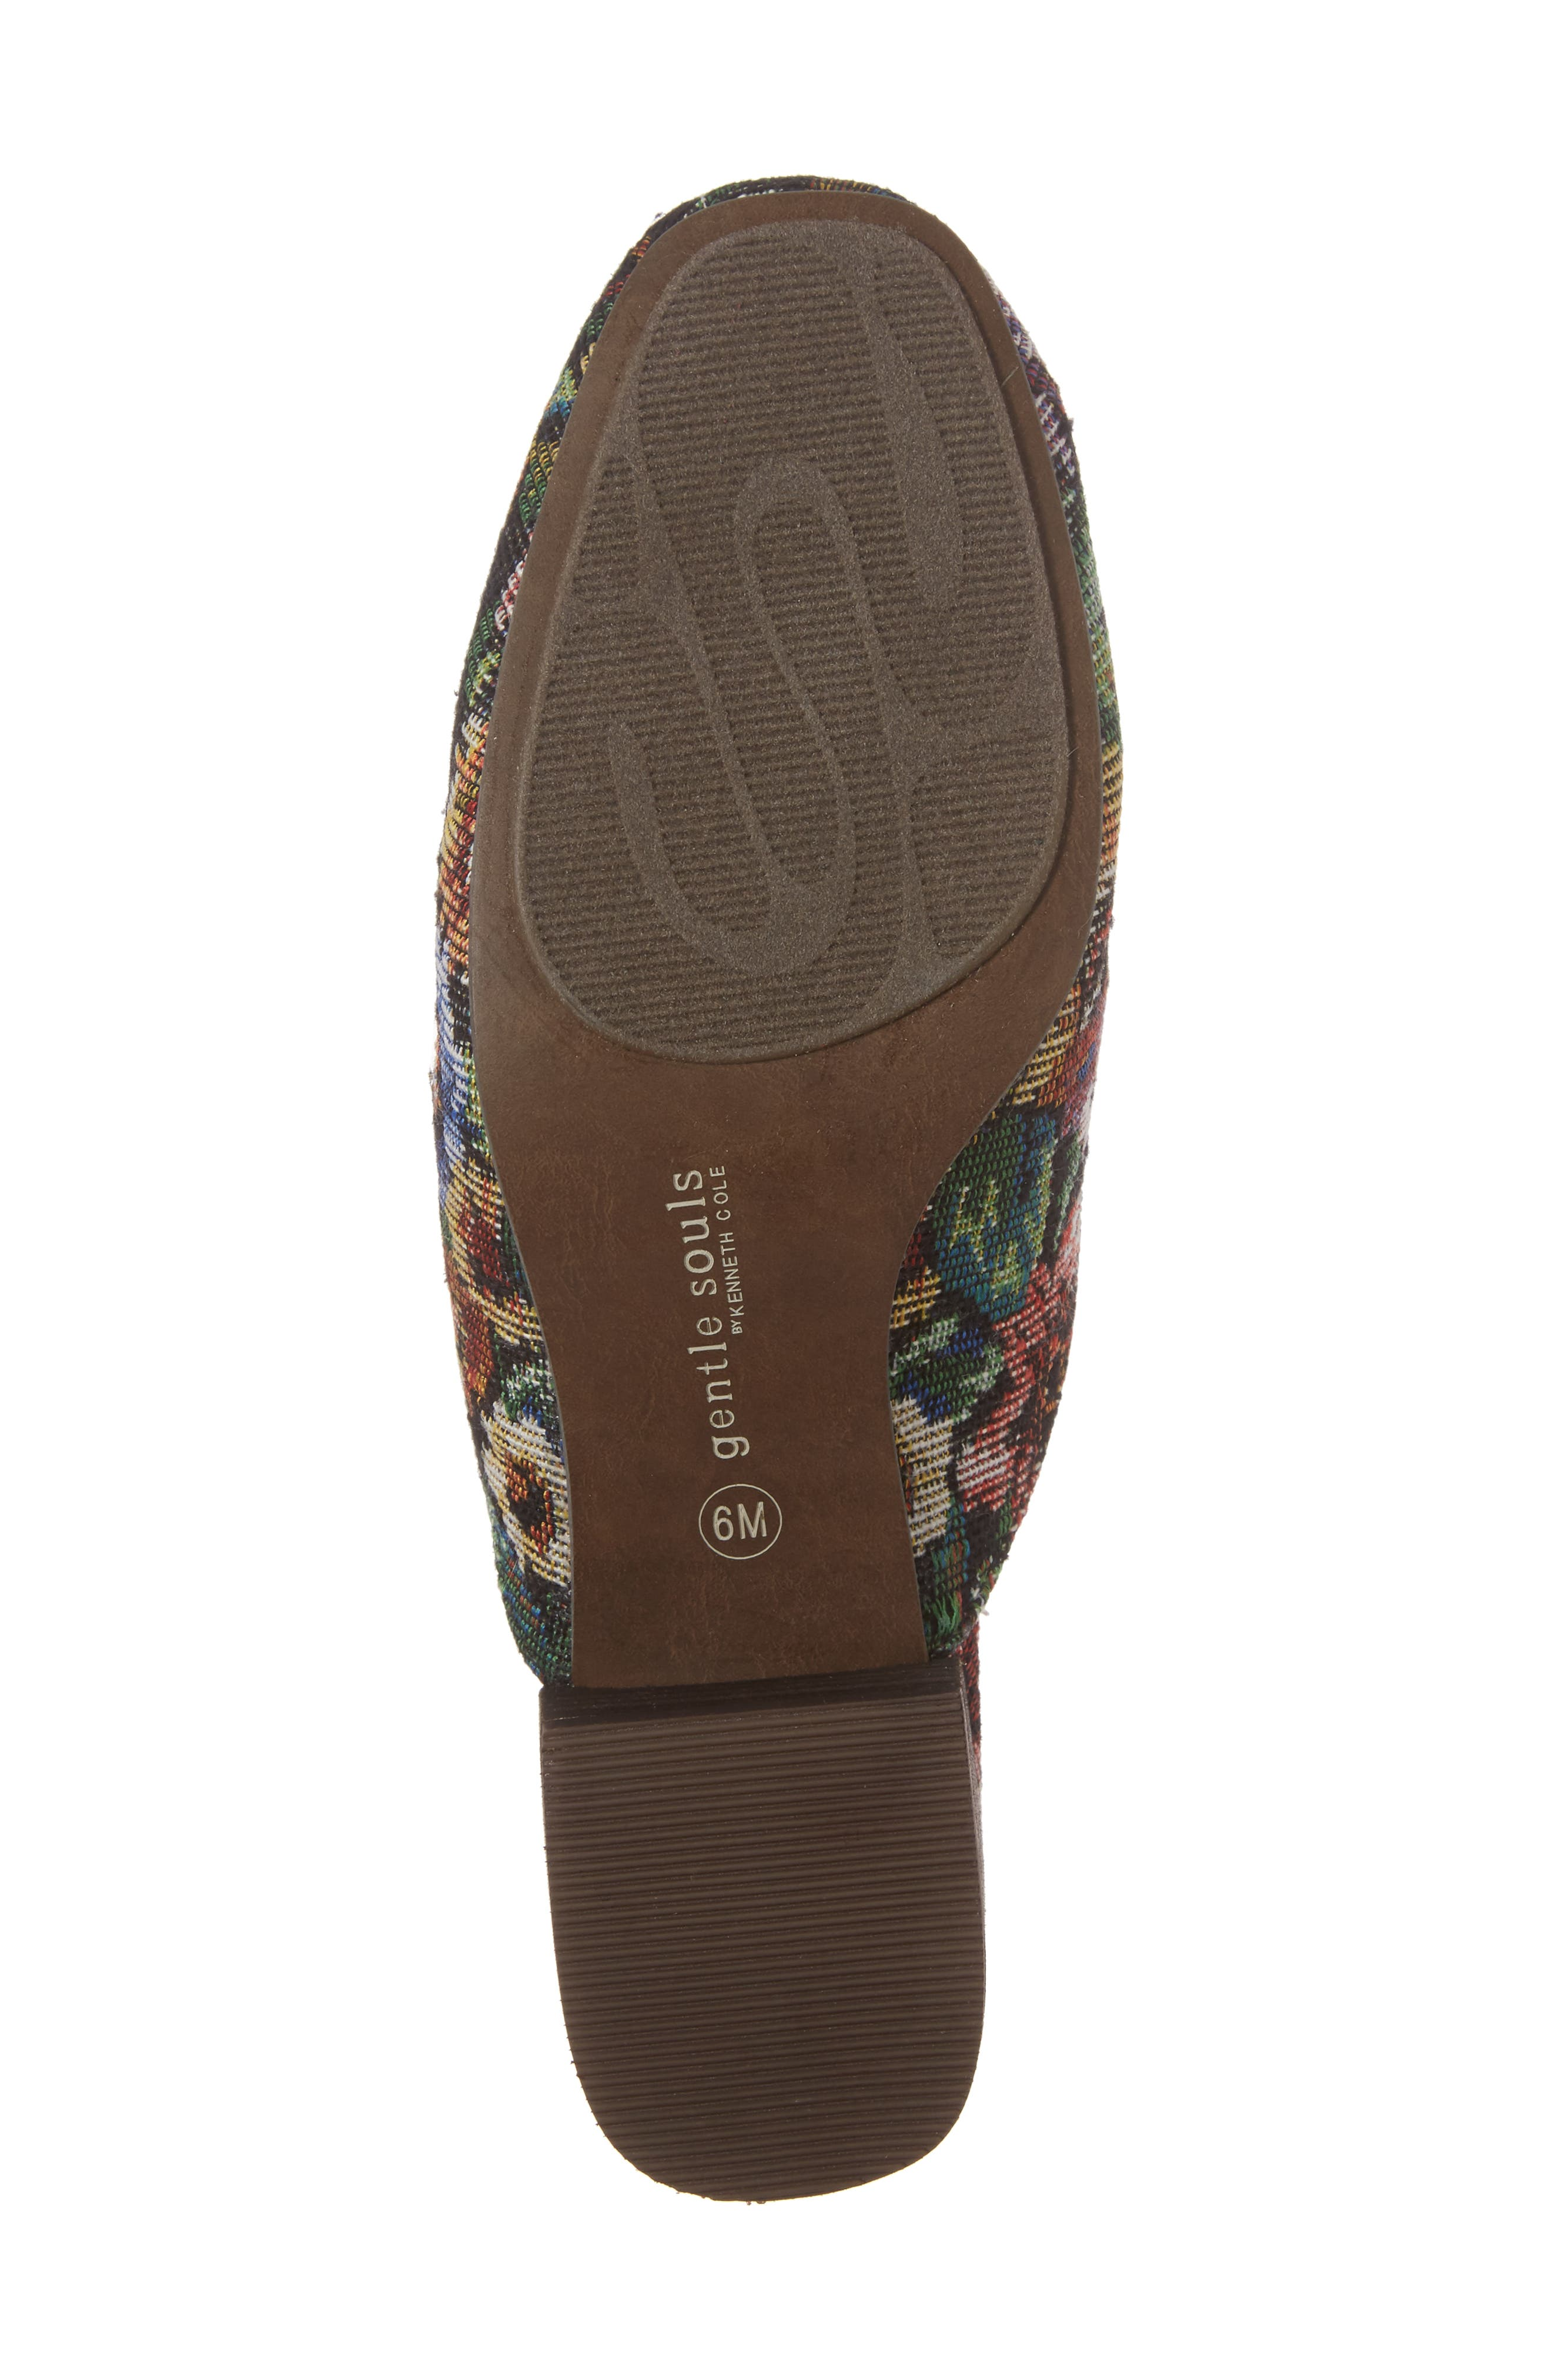 Eida Loafer Mule,                             Alternate thumbnail 6, color,                             Floral Fabric